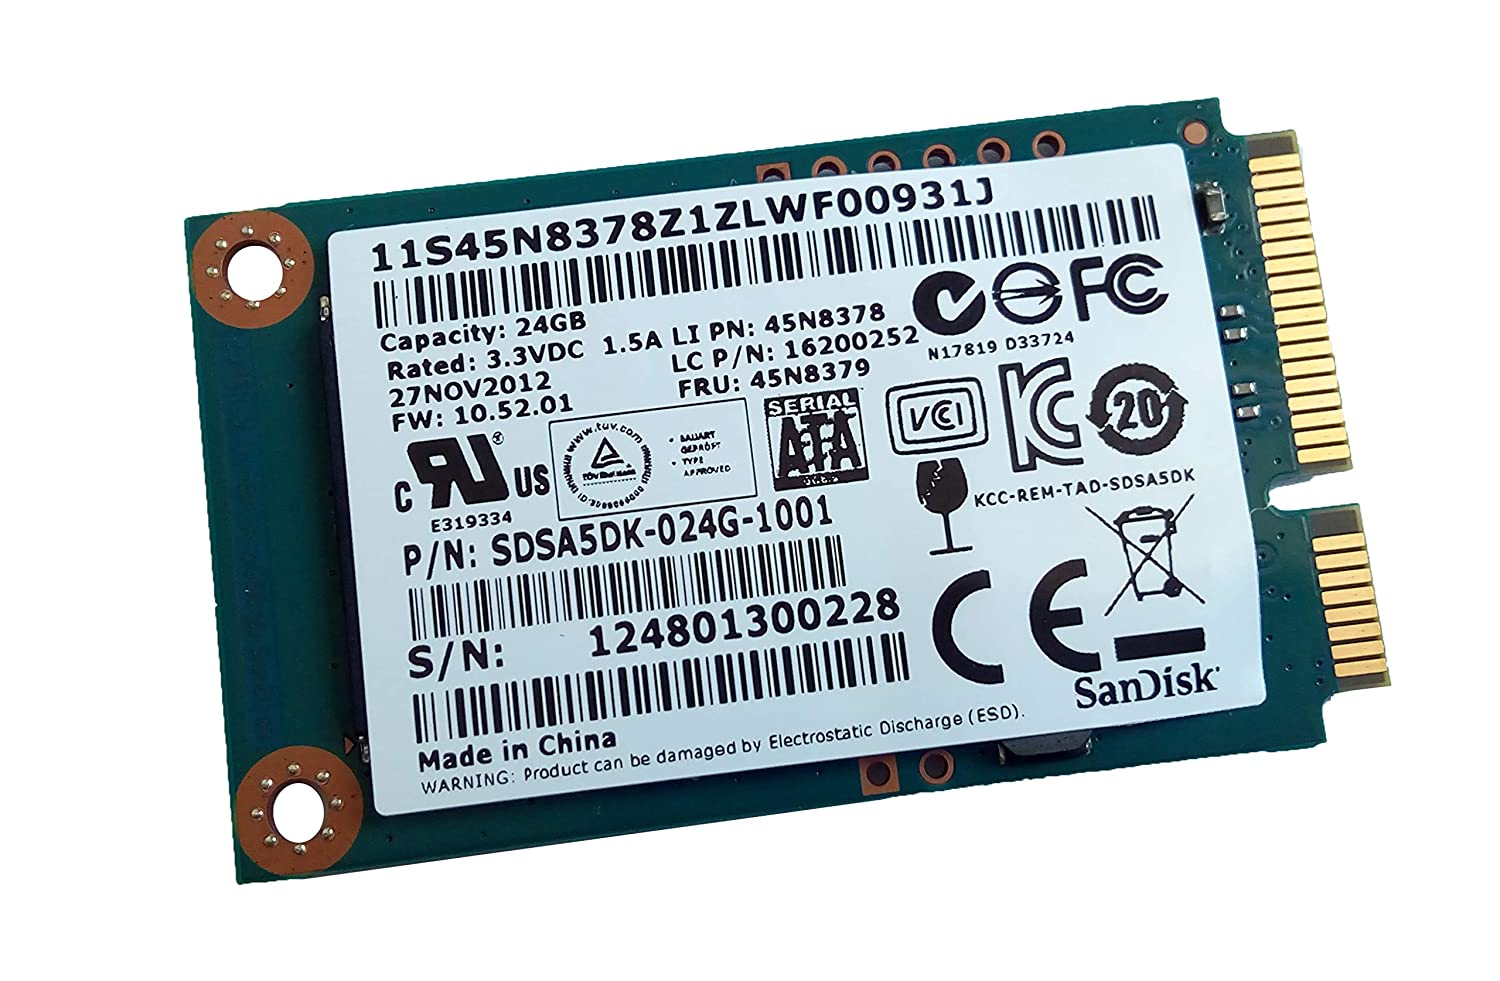 Amazon.com: 24GB mSATA Hard Disk for Lenovo Ideapad Yoga 2 ...